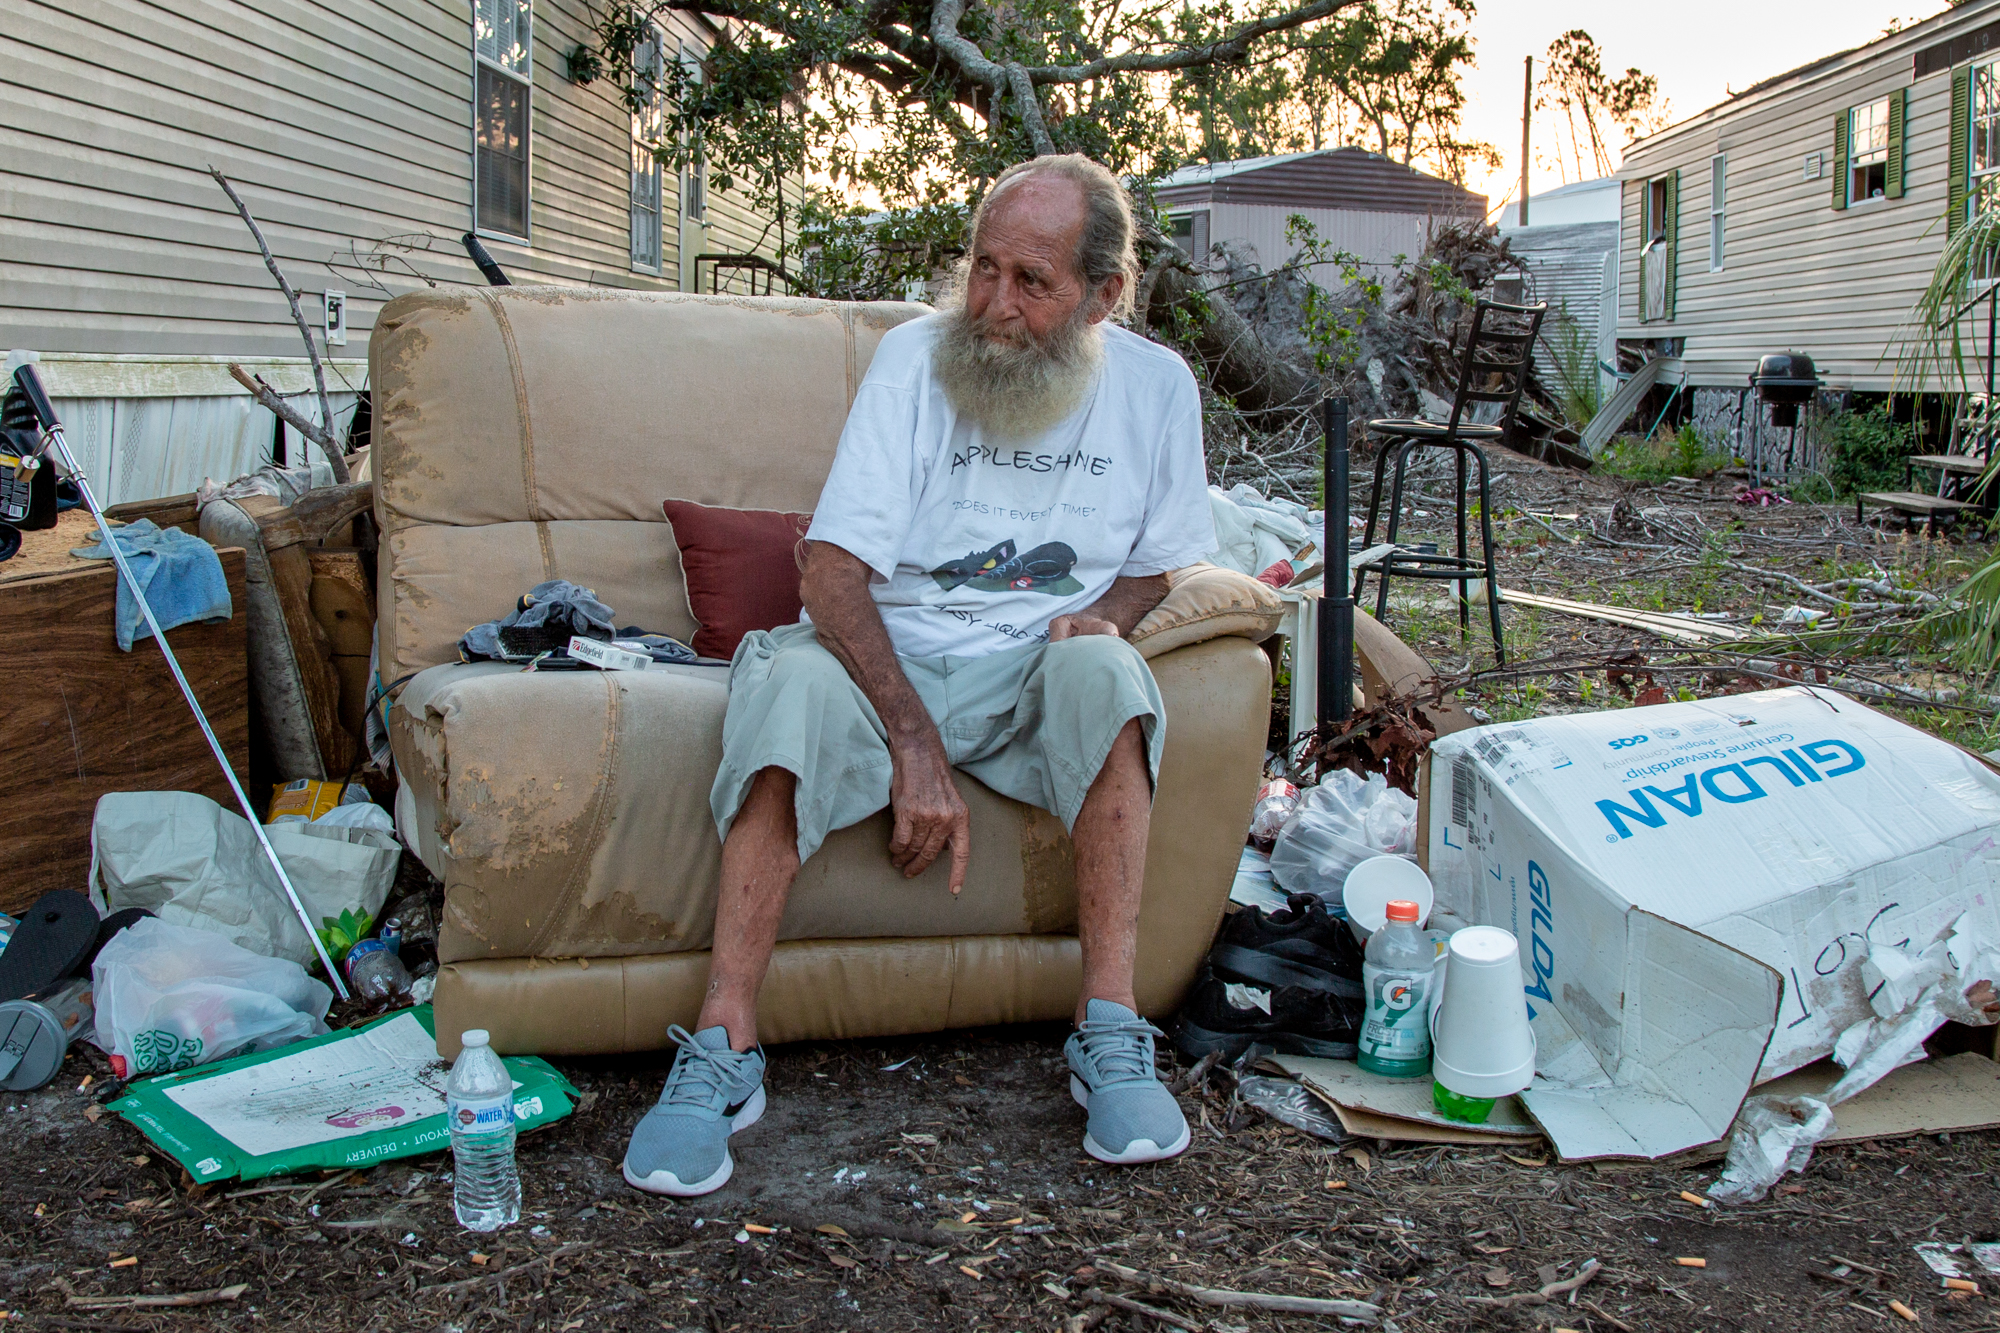 Phillip Ingram - Phillip Ingram, 66, lost his trailer during Hurricane Michael last October, but he still lives in Lynn Haven Mobile Home Park because he can't afford the inflated rent around Panama City, Florida. However, Lynn Haven is slated to close, and remaining residents will have to go. (Jake Goodrick/News21)